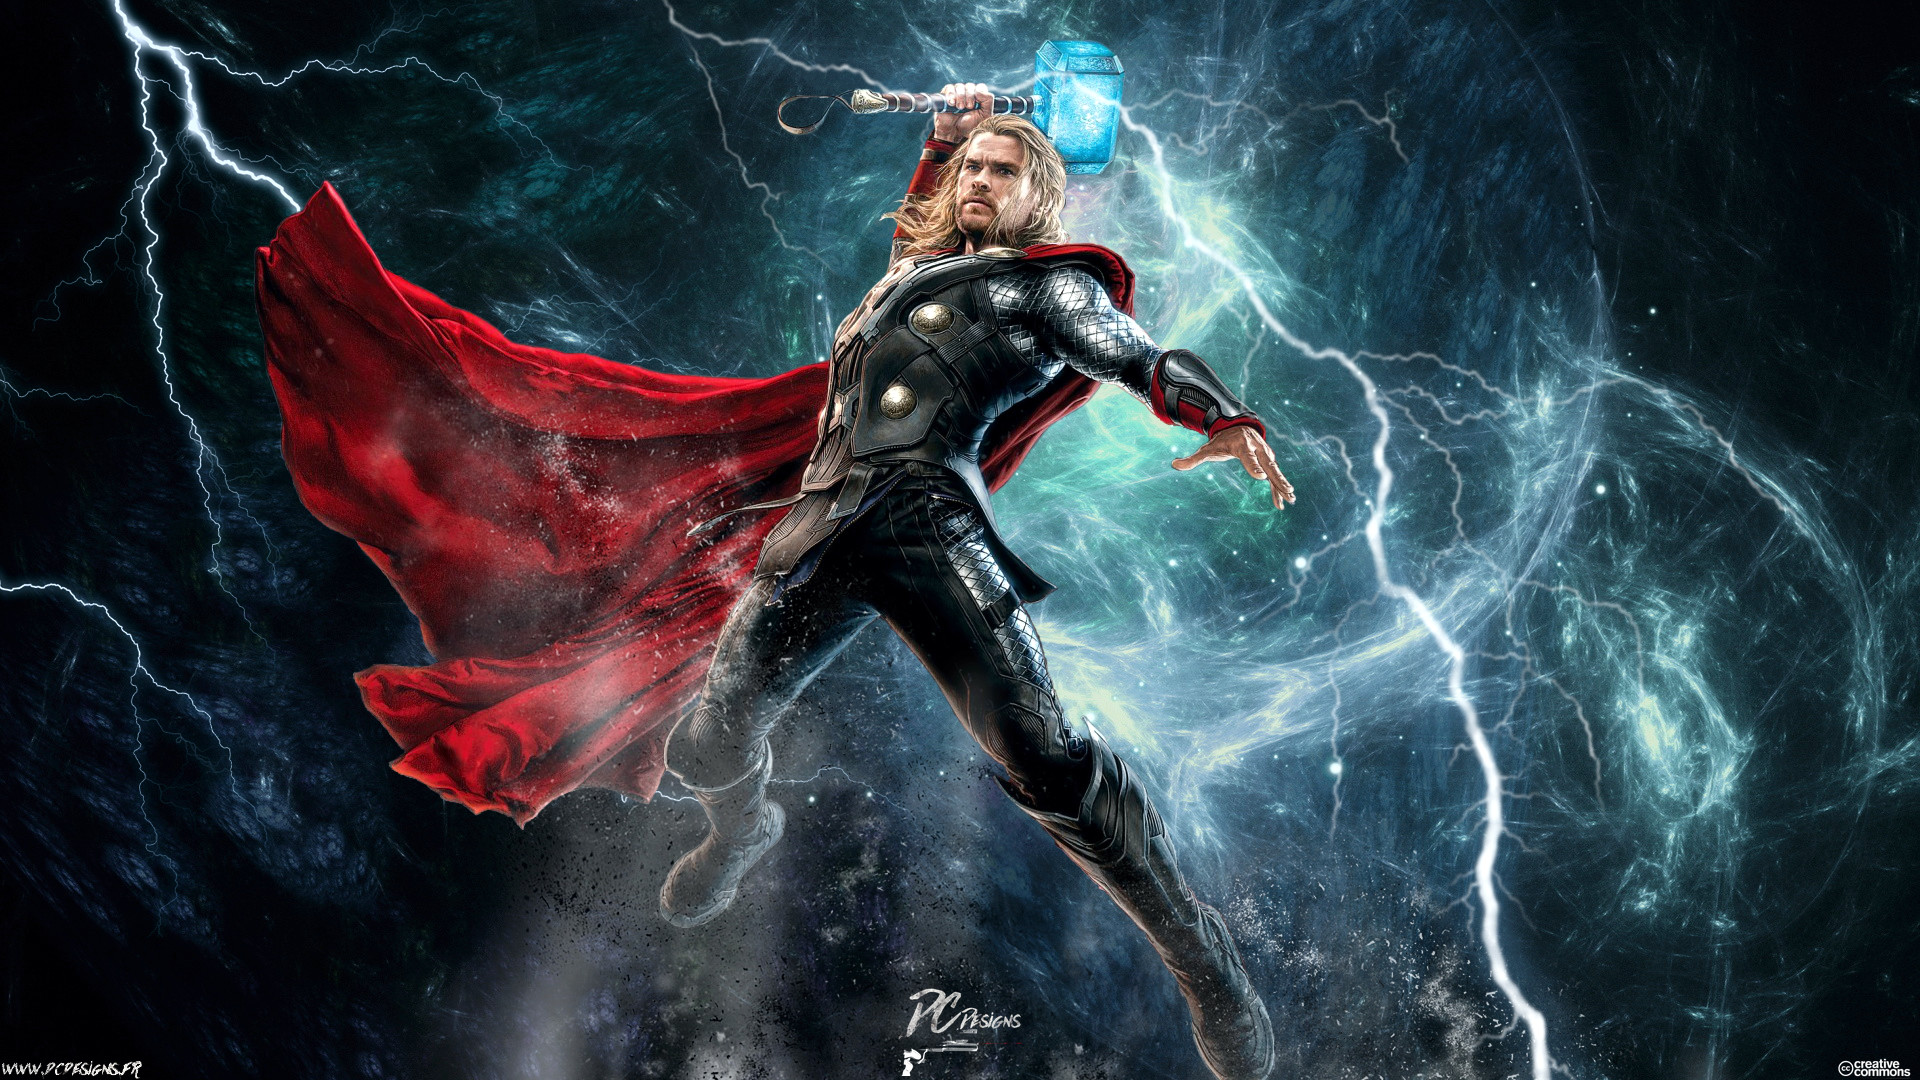 Thor wallpaper hd 77 images - Fan wallpaper download ...